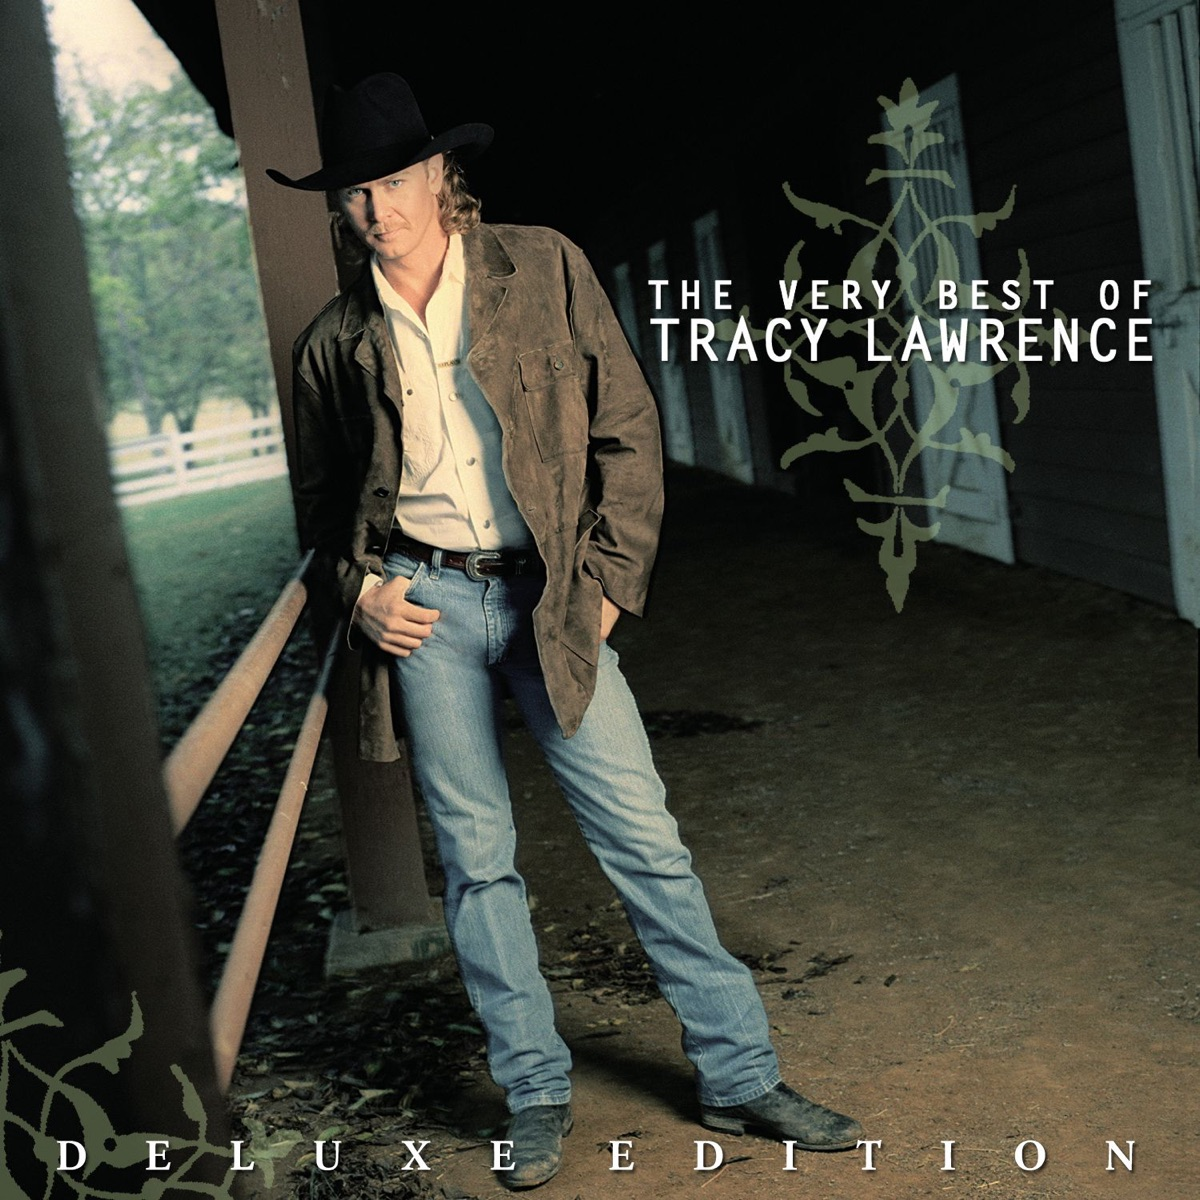 The Very Best of Tracy Lawrence Deluxe Edition Remastered Tracy Lawrence CD cover